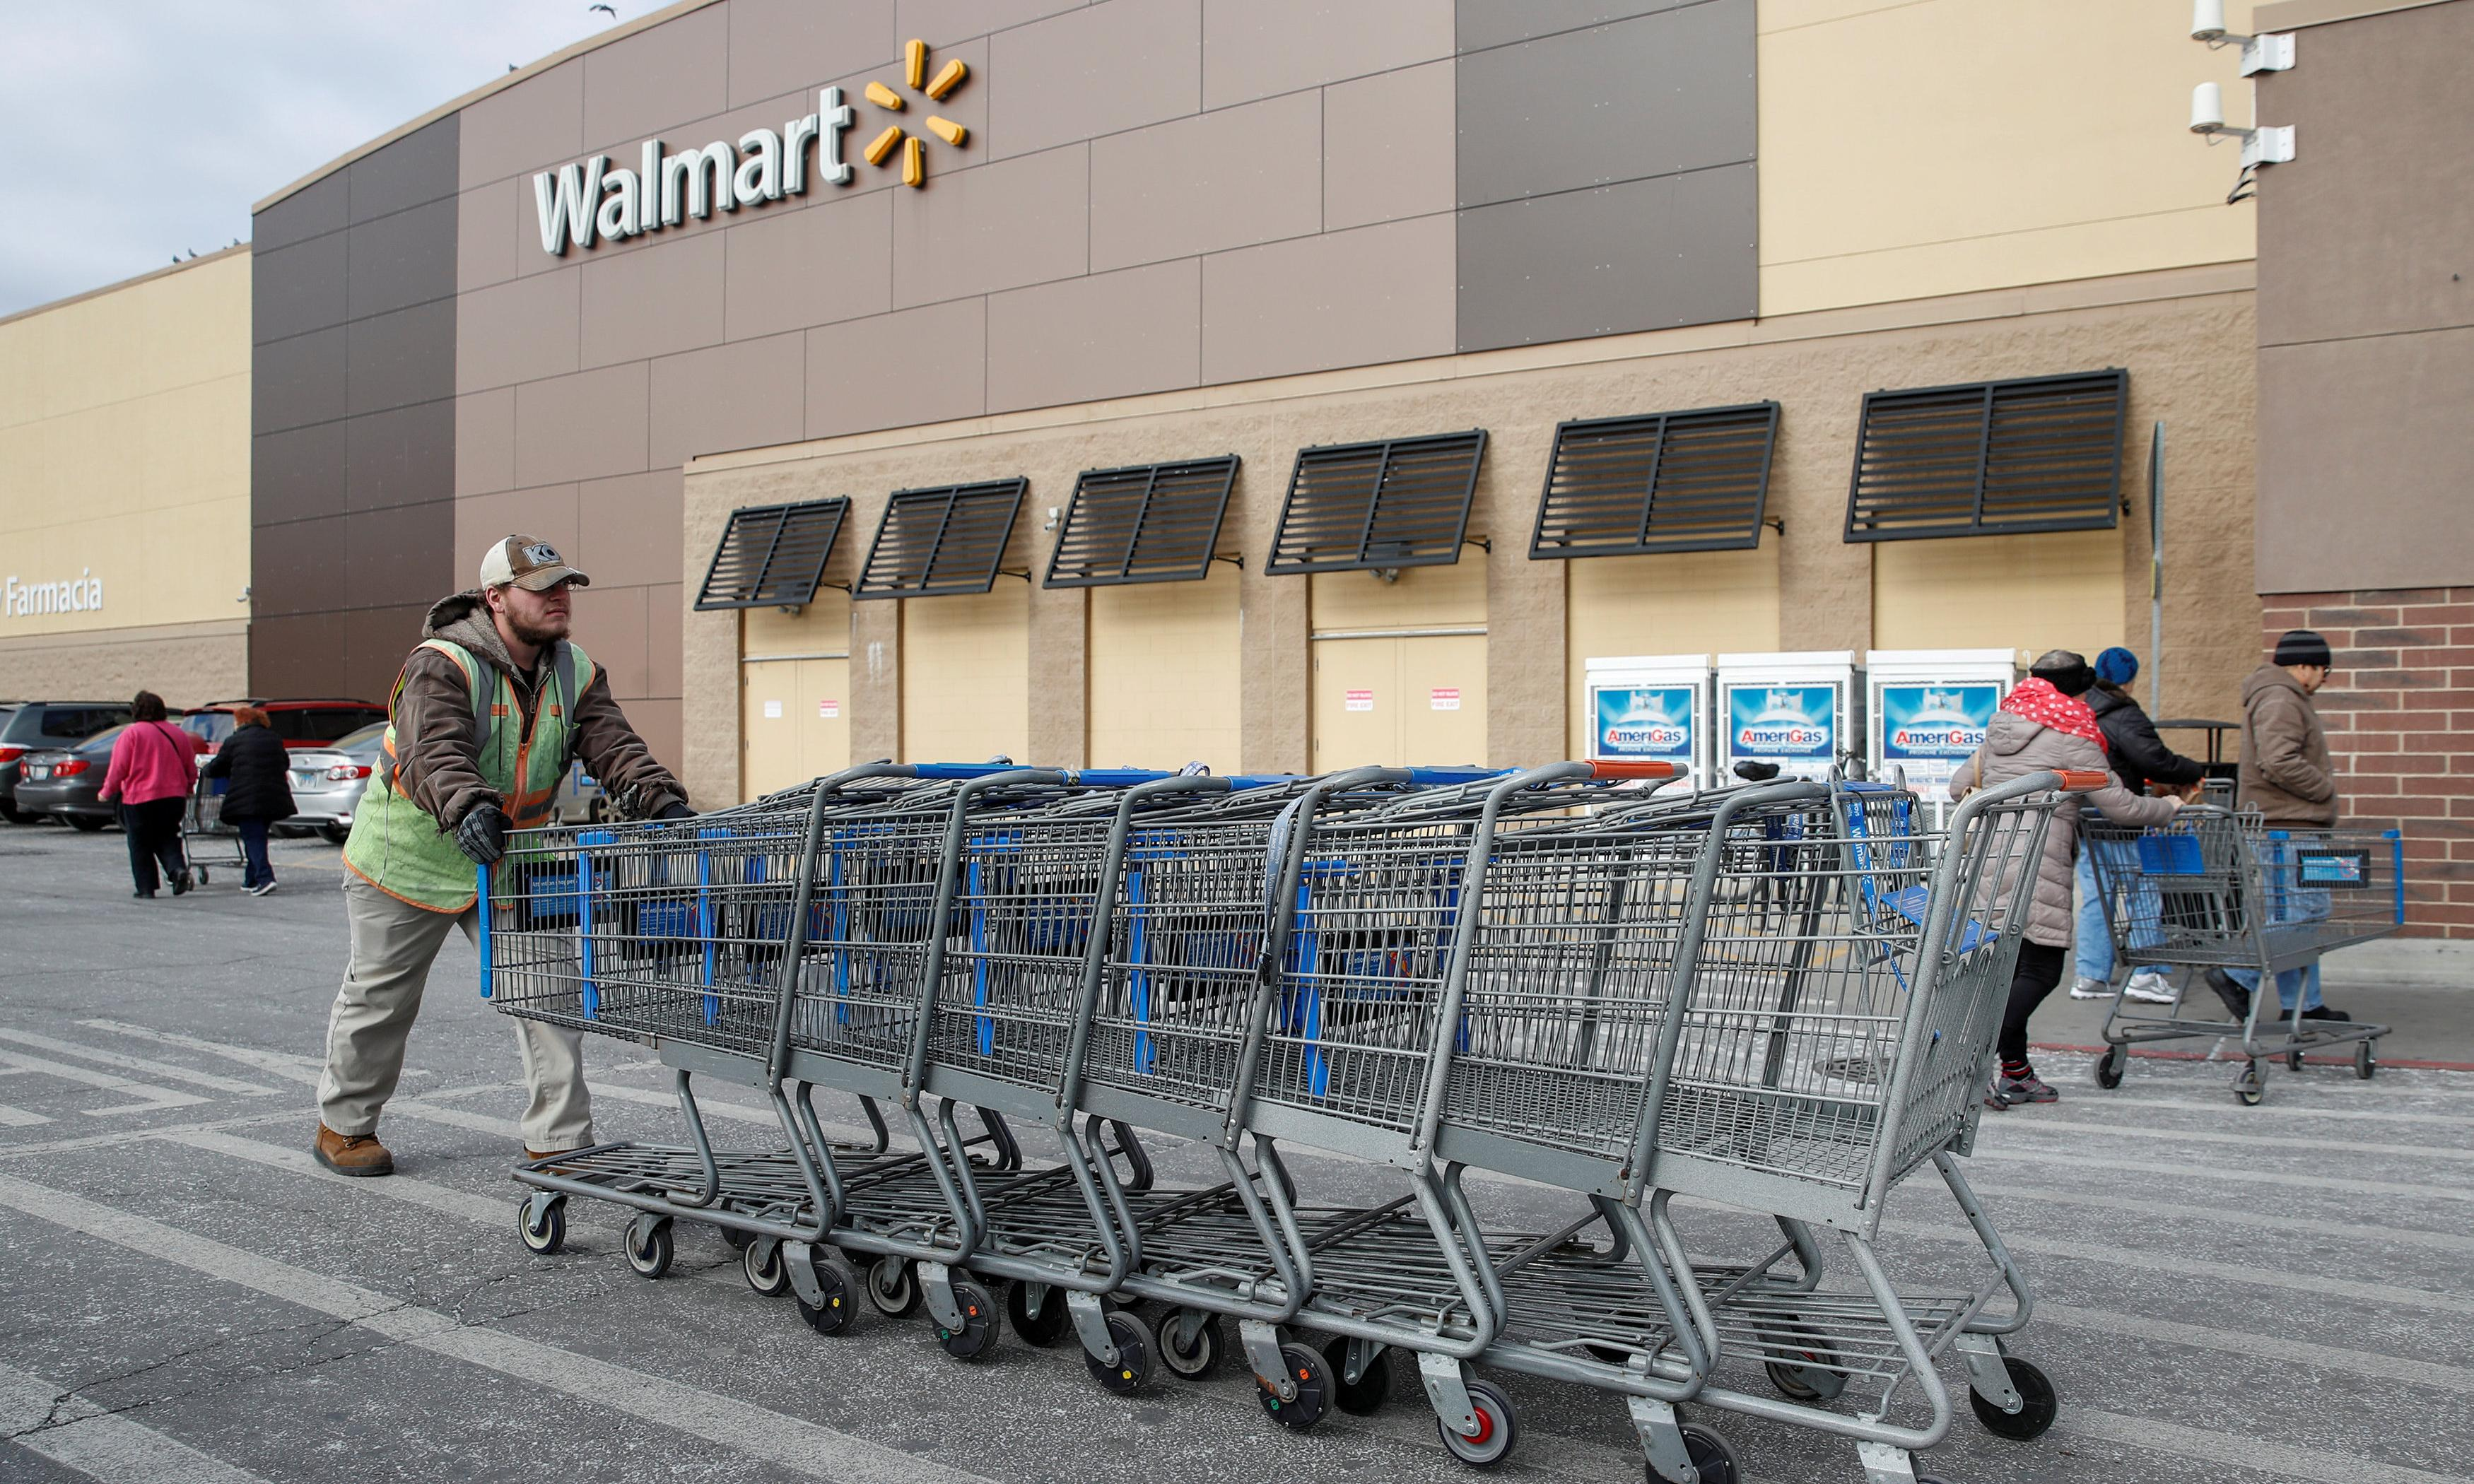 Retail workers face layoffs and erratic schedules as holiday season ends